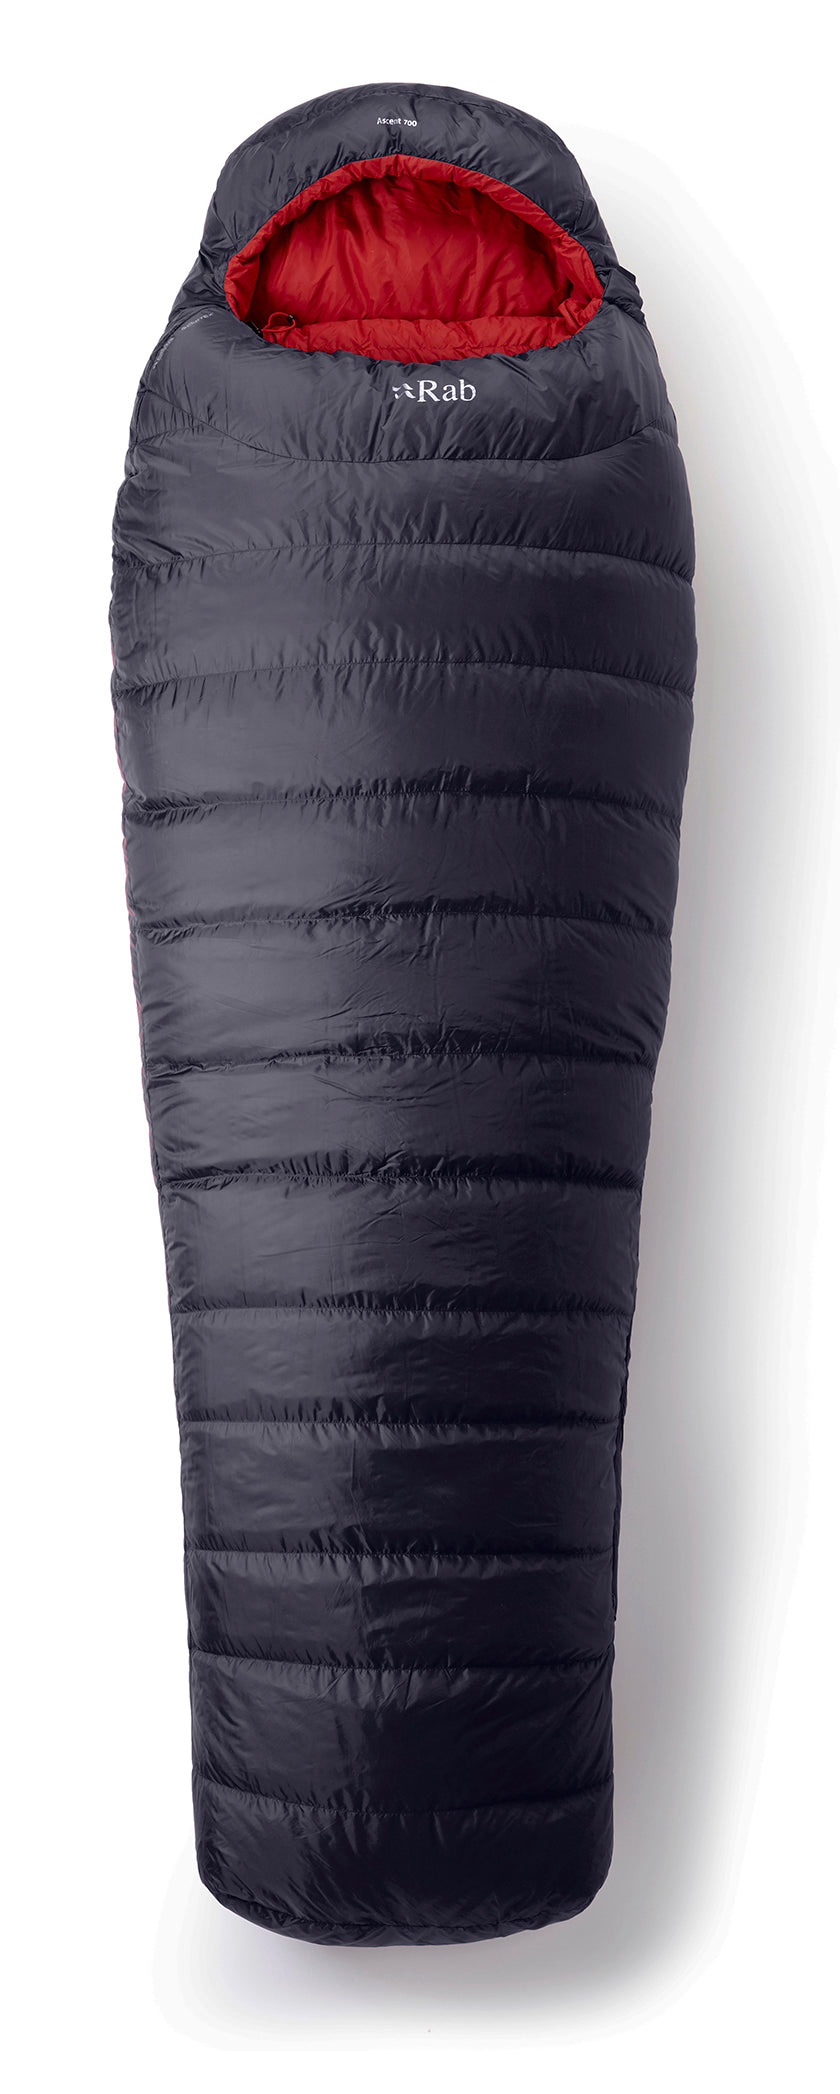 Rab Ascent 700 (Standard) Sleeping Bag